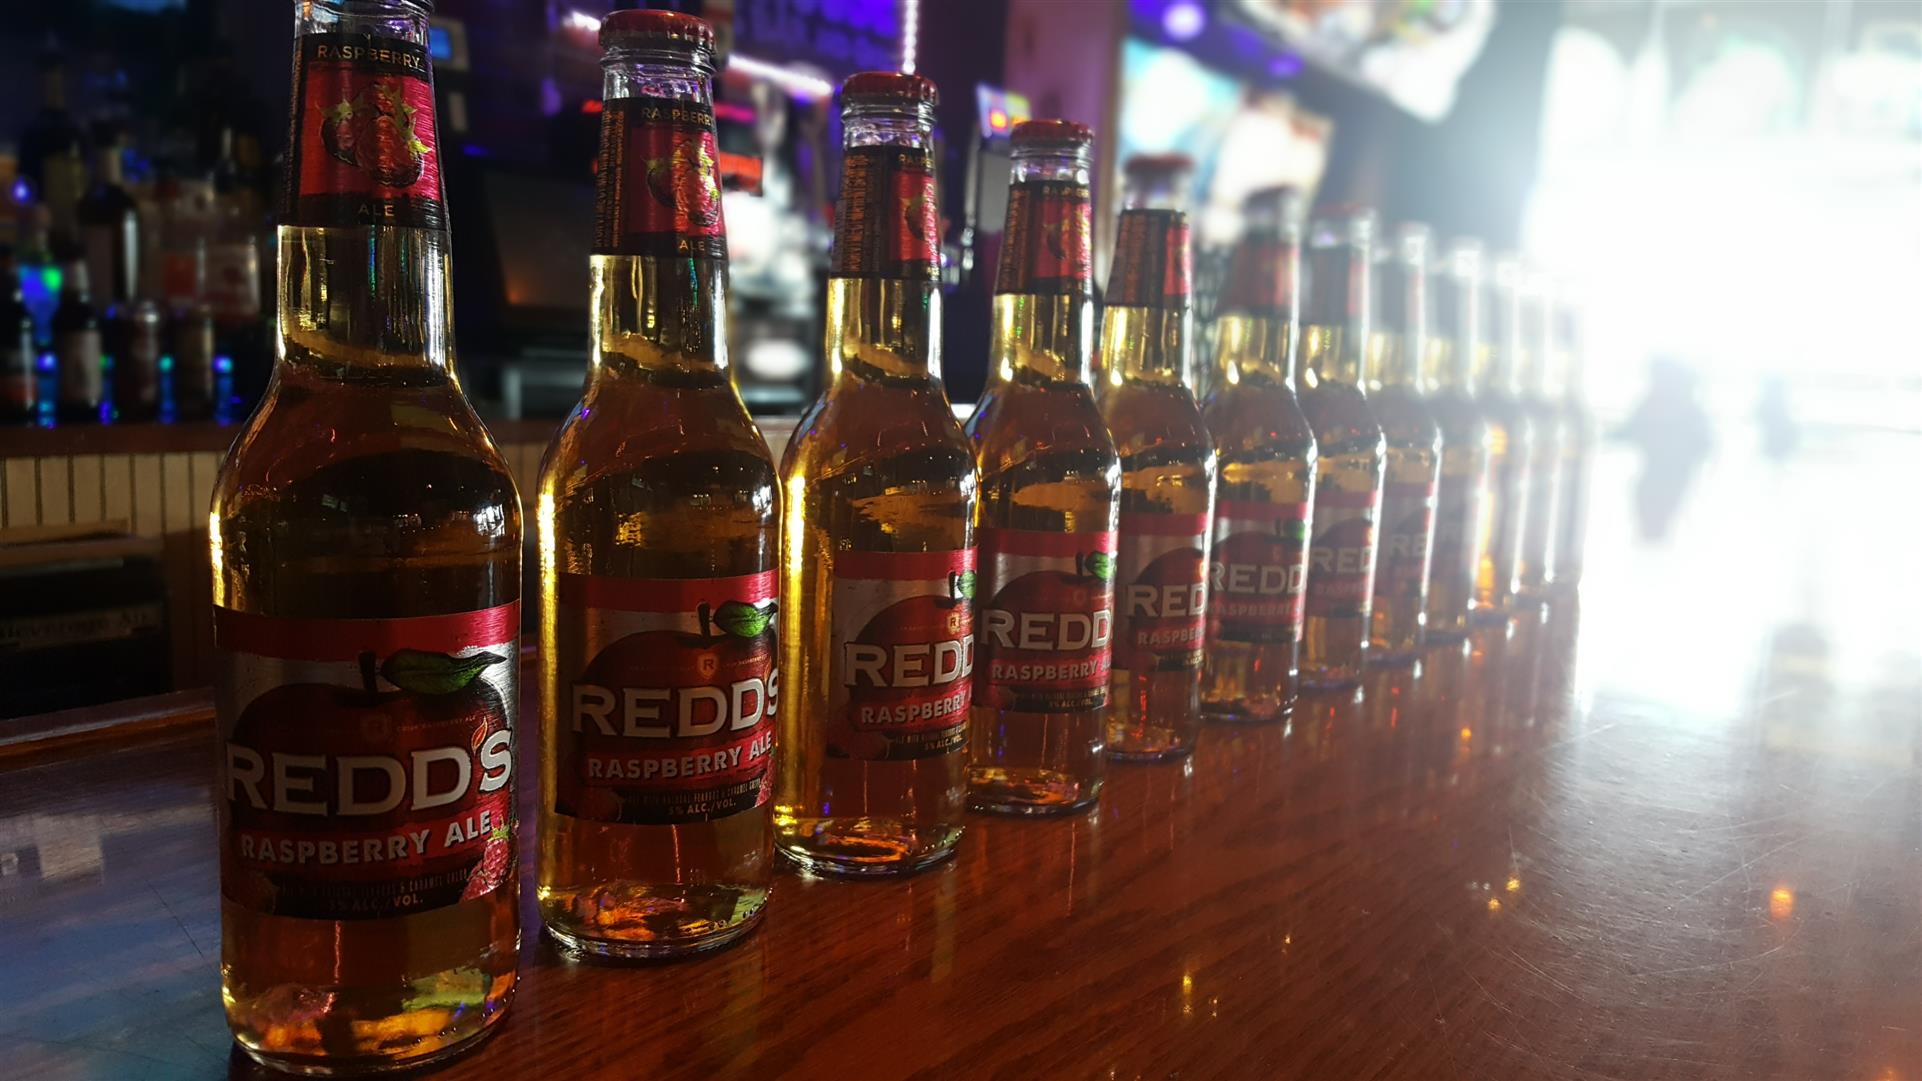 assortment of Redd's bottles on a bar top